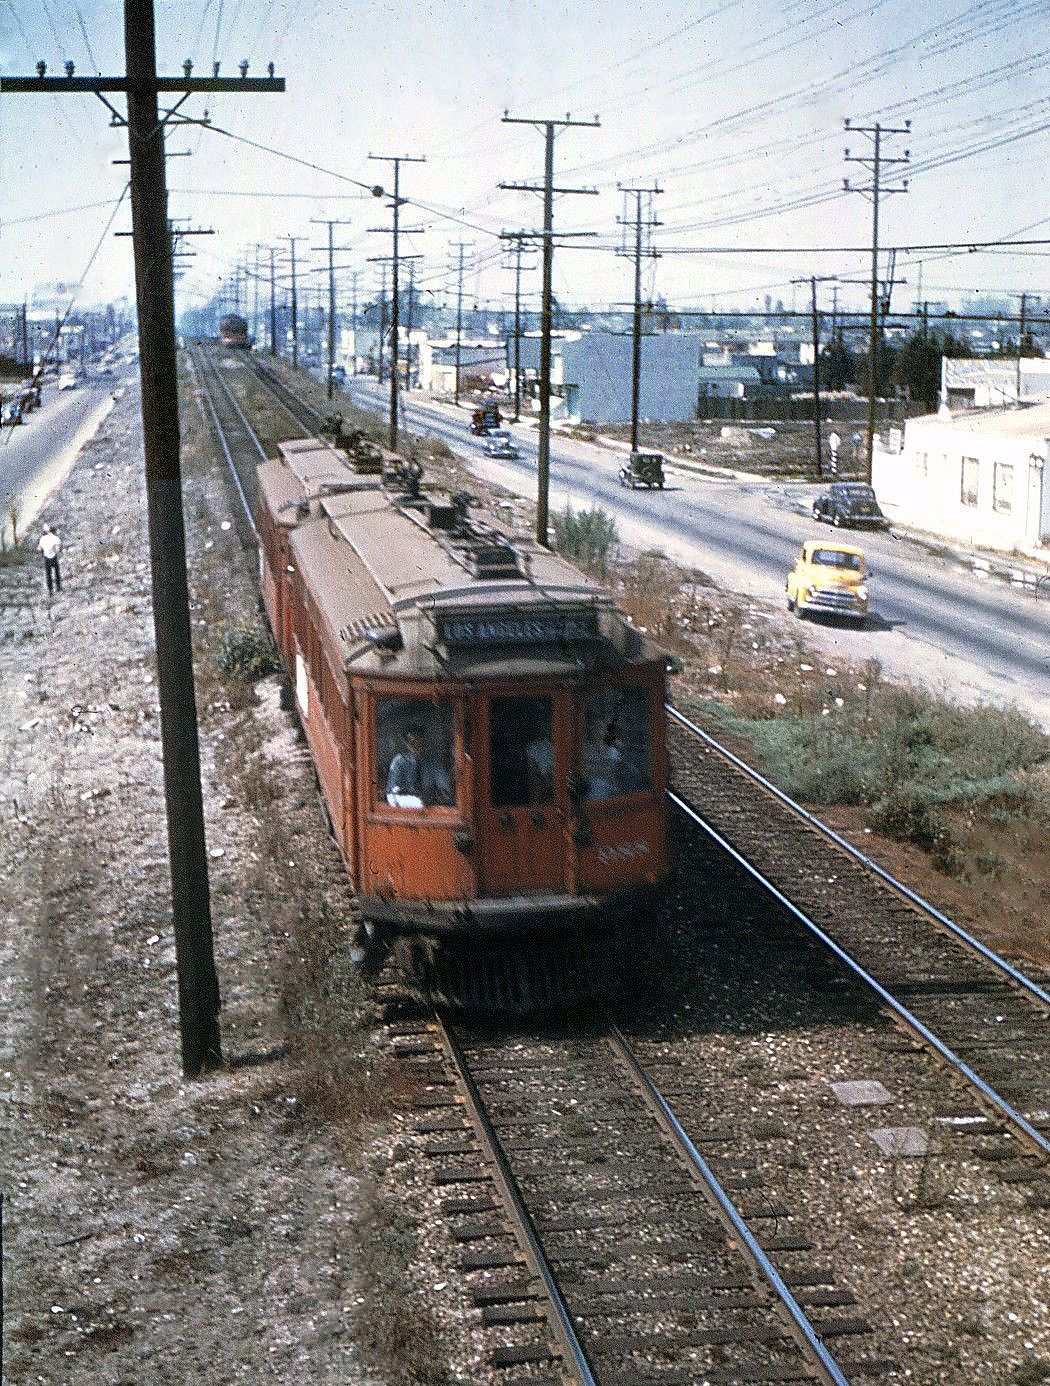 transpress nz: Pacific Electric interurbans on the Venice Short Line ...